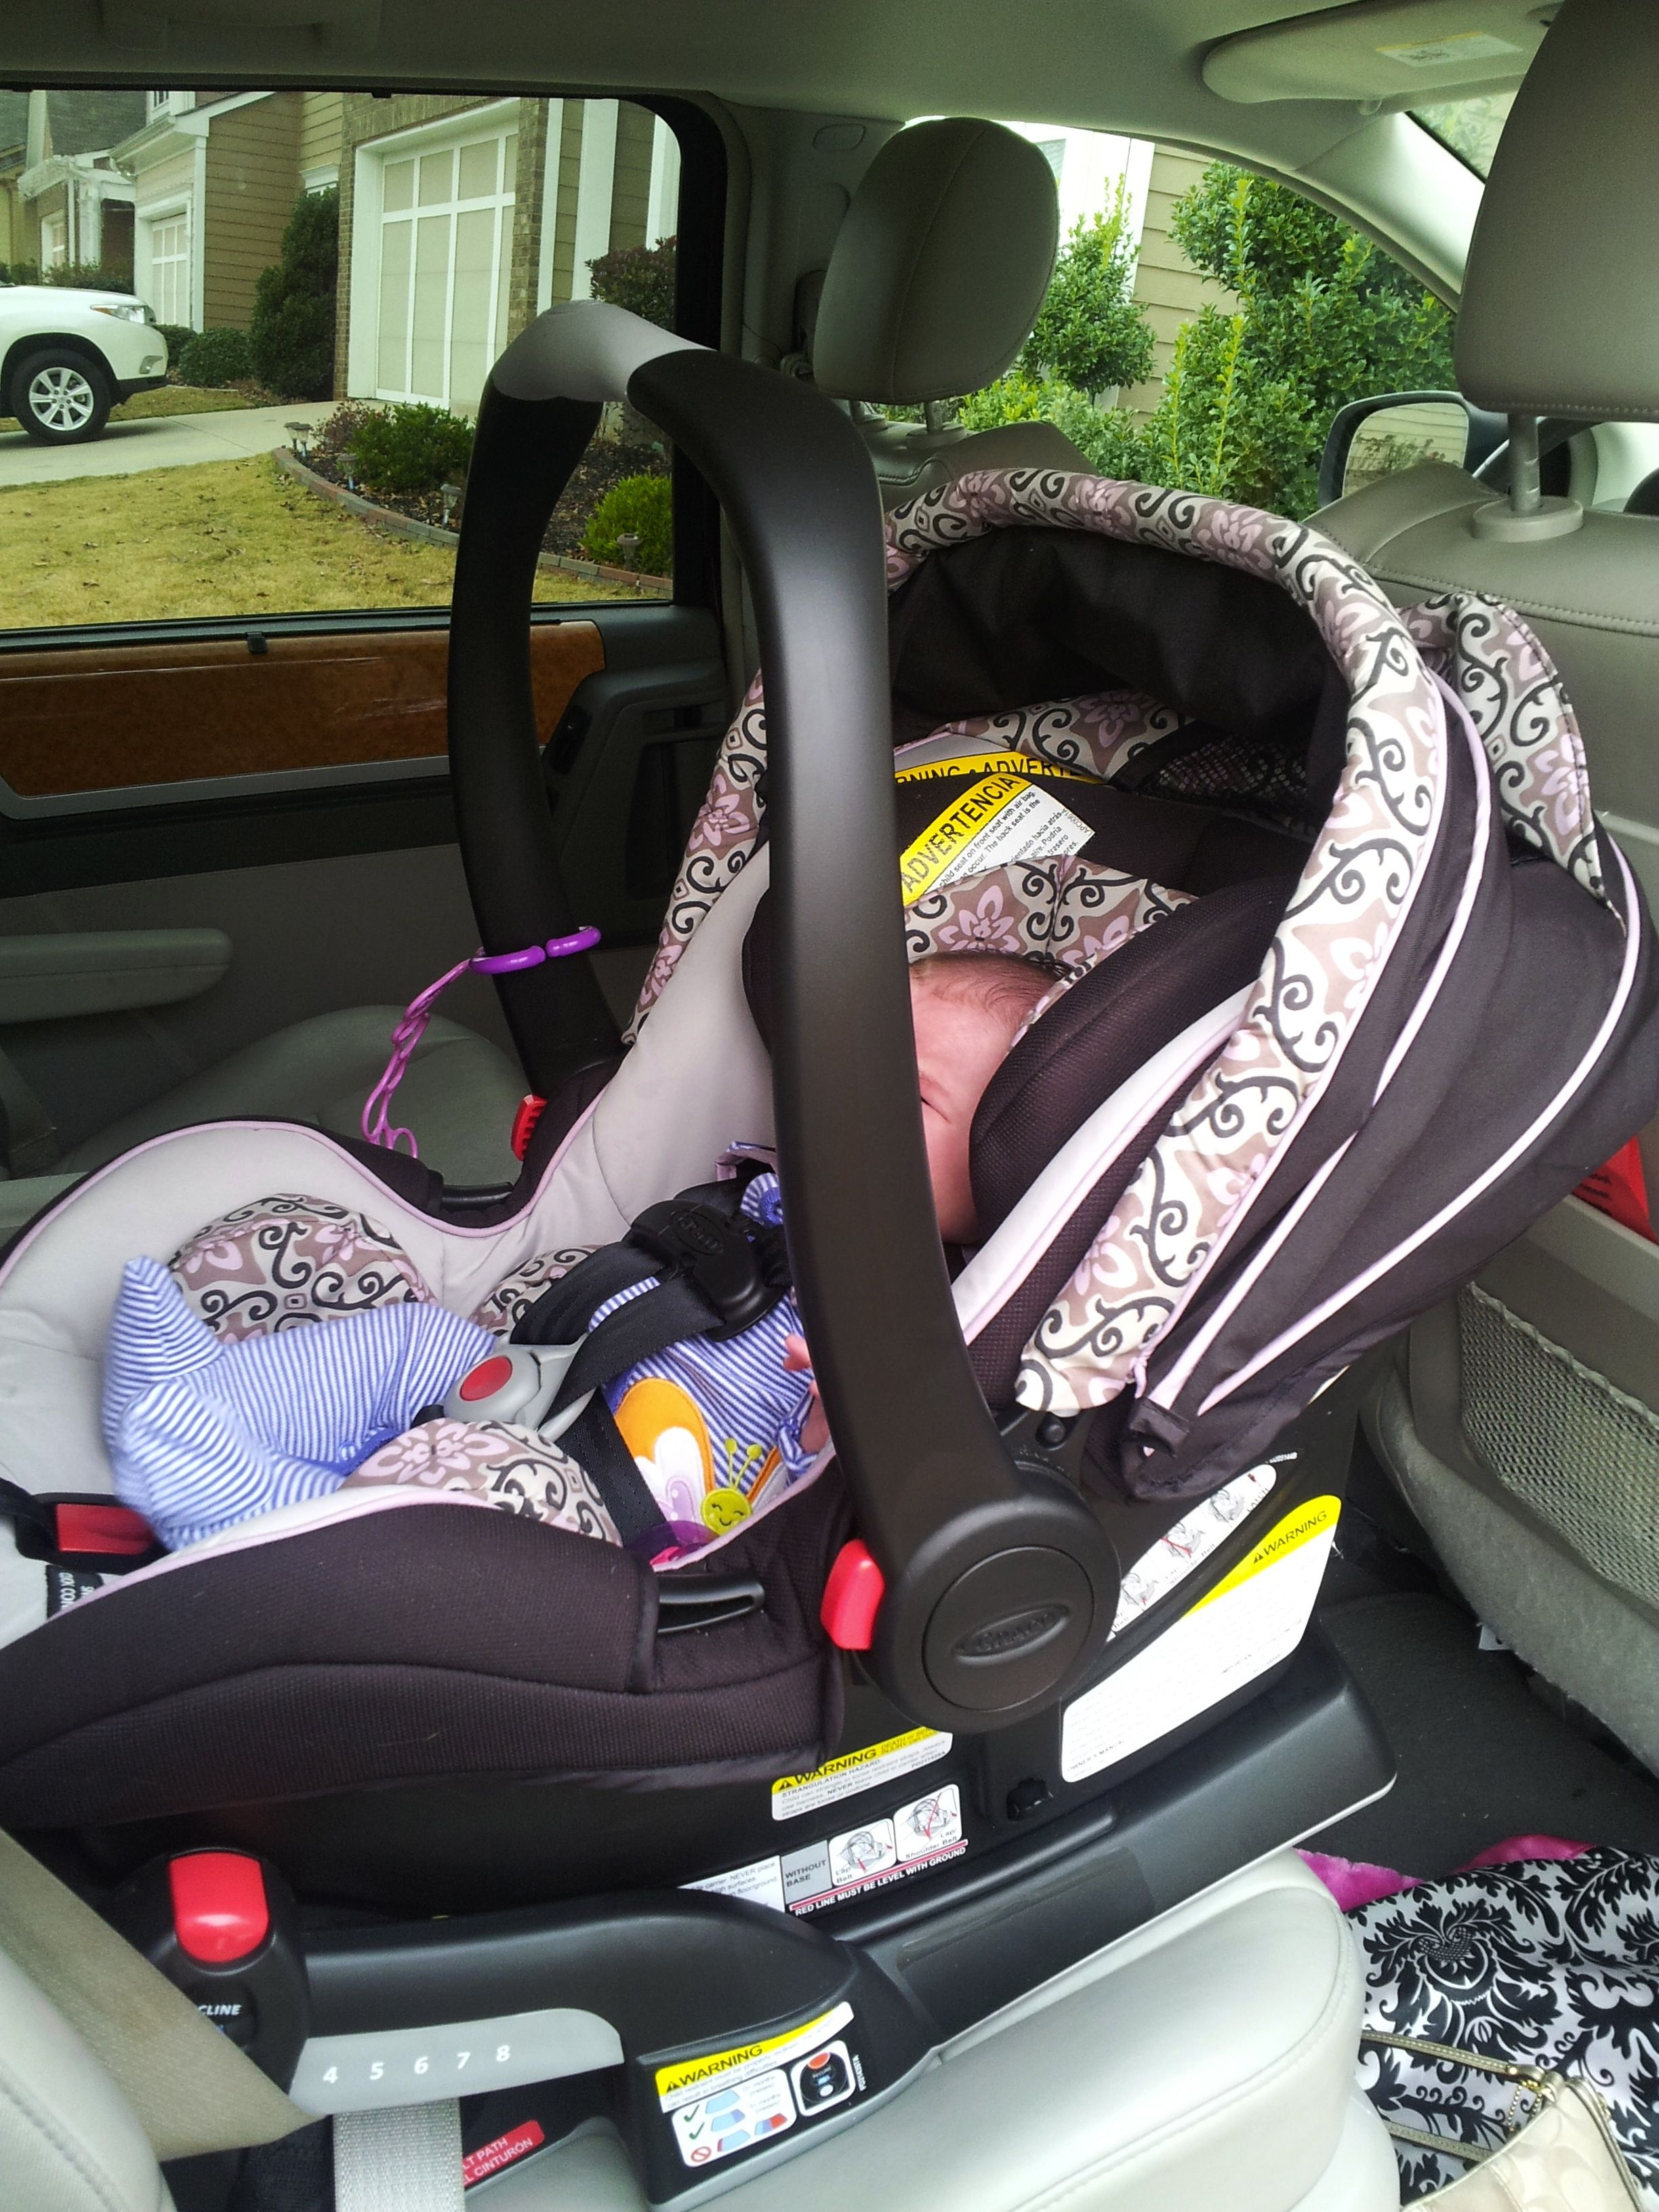 Our guest blogger vicki tested out the graco snugride click connect 40 infant car seat and